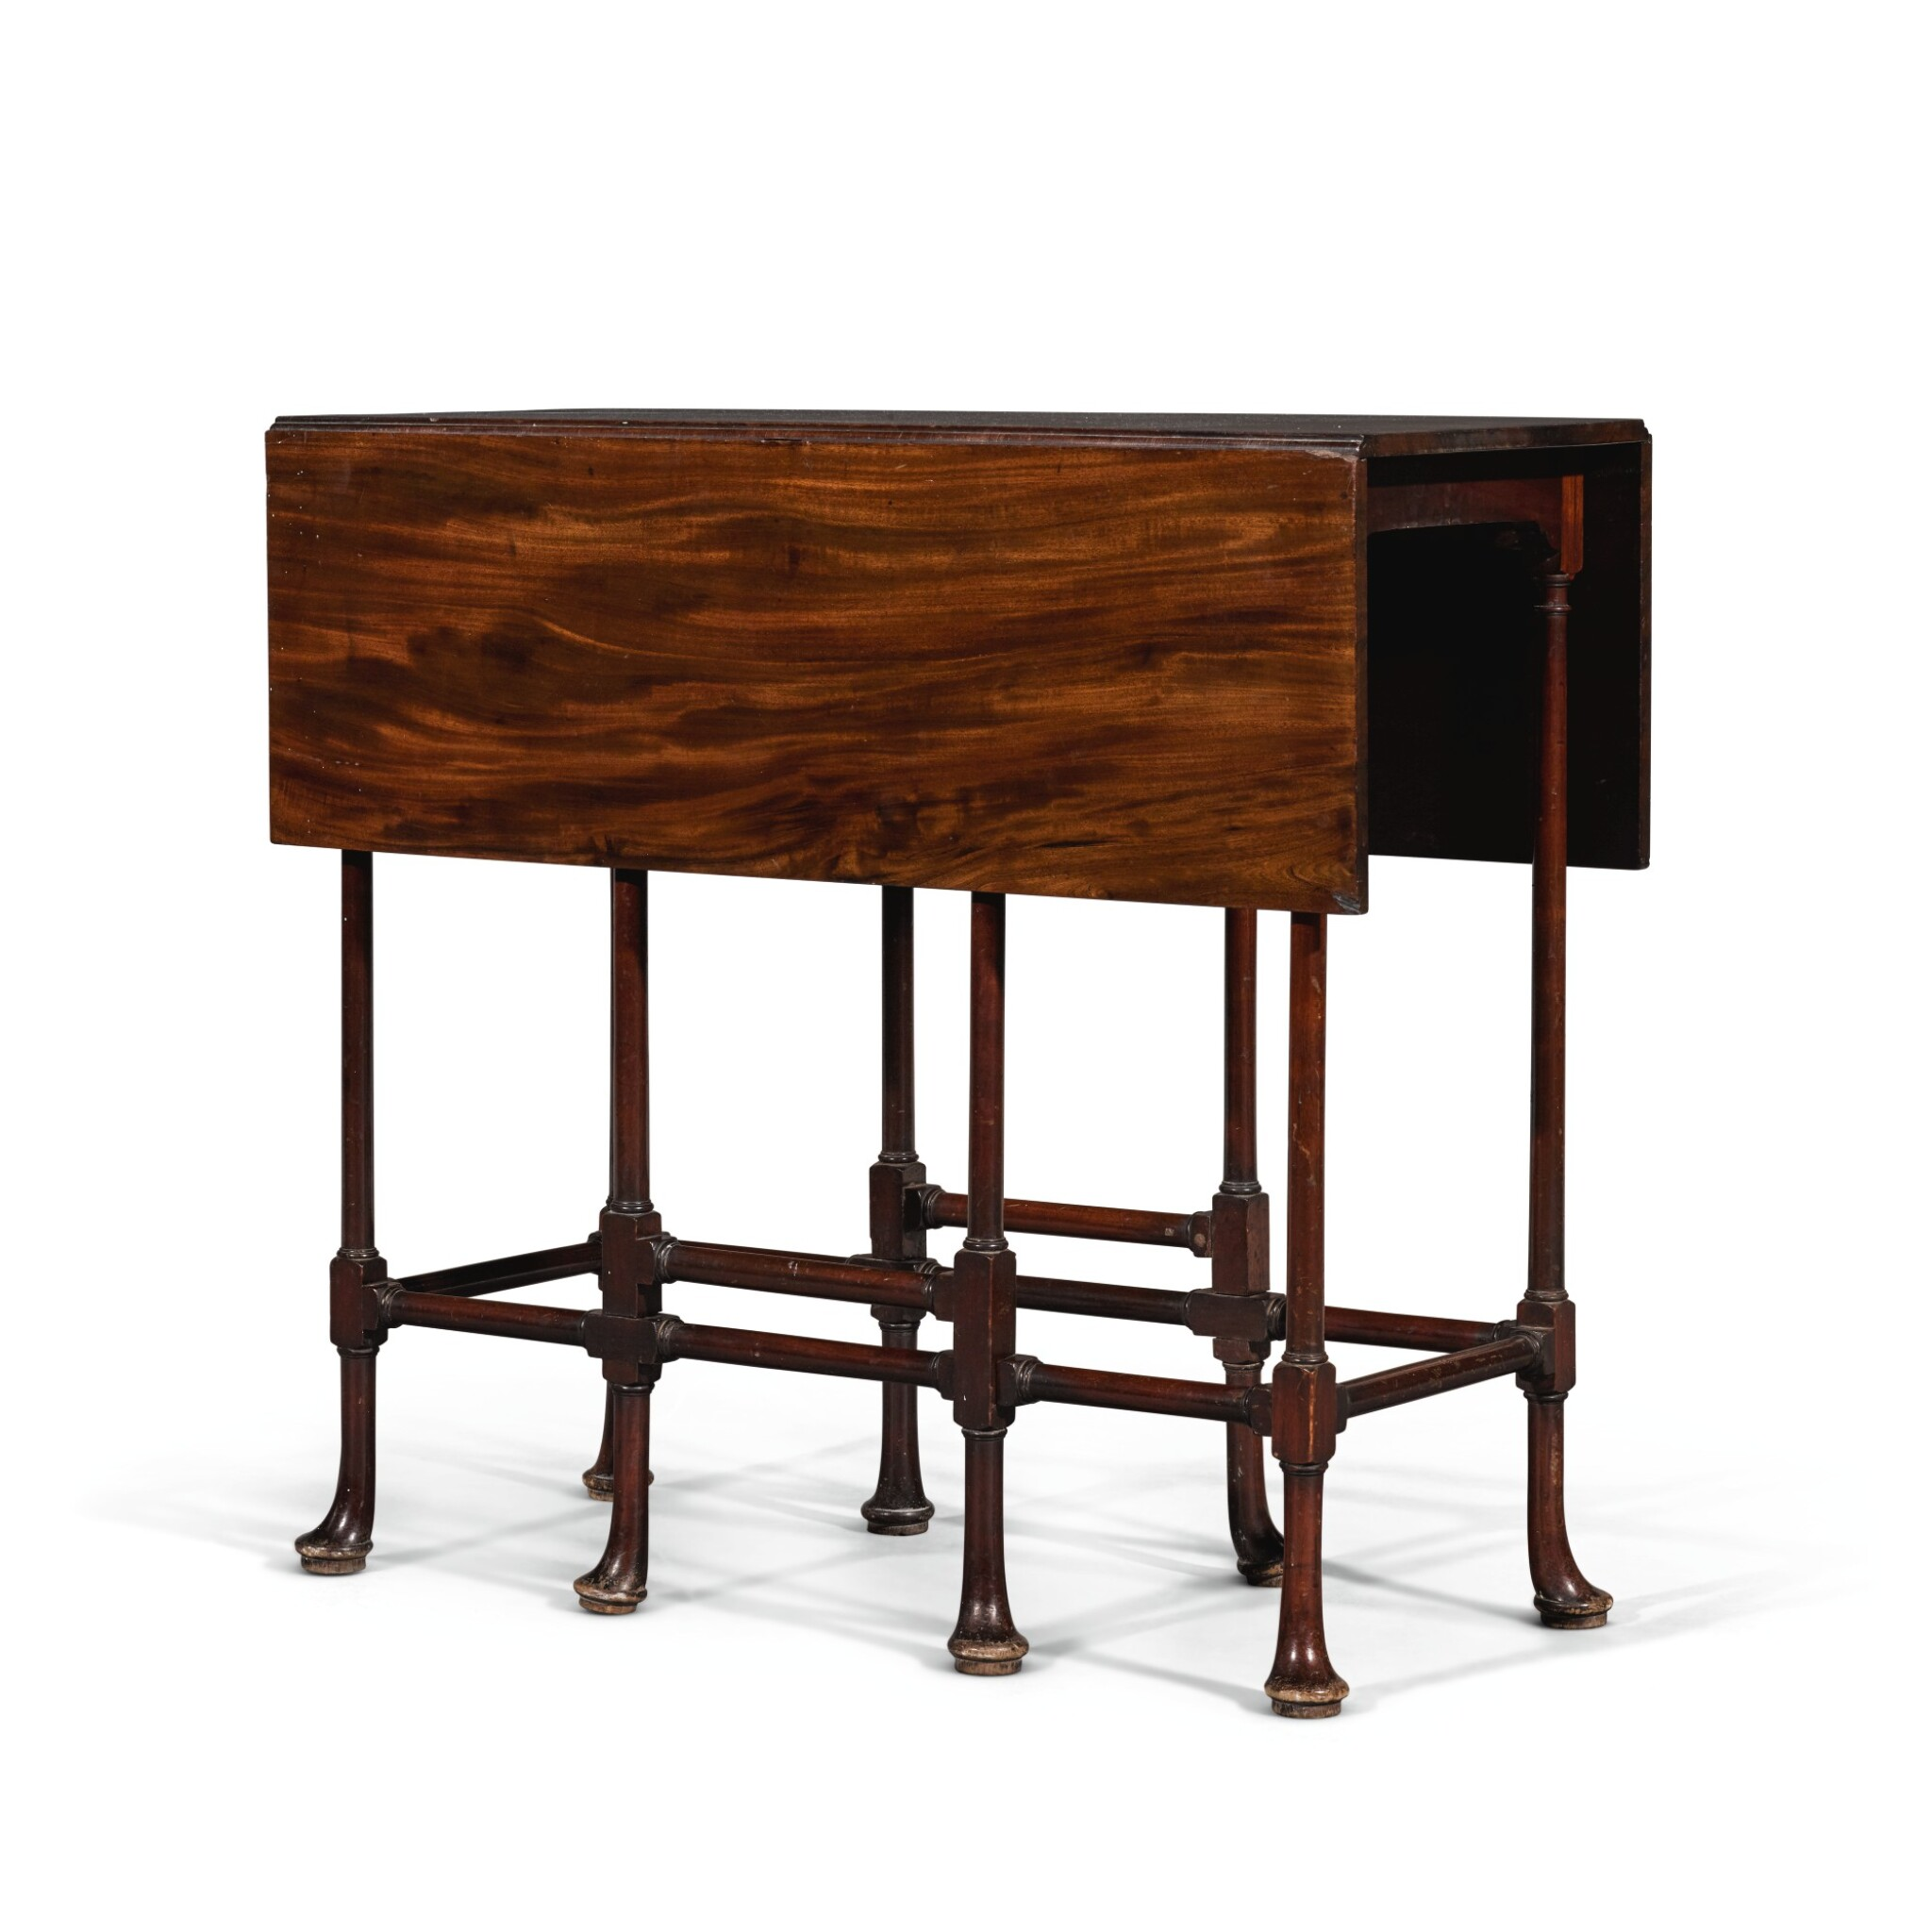 View full screen - View 1 of Lot 252. A George III mahogany spider-leg table by Thomas Chippendale, 1768.